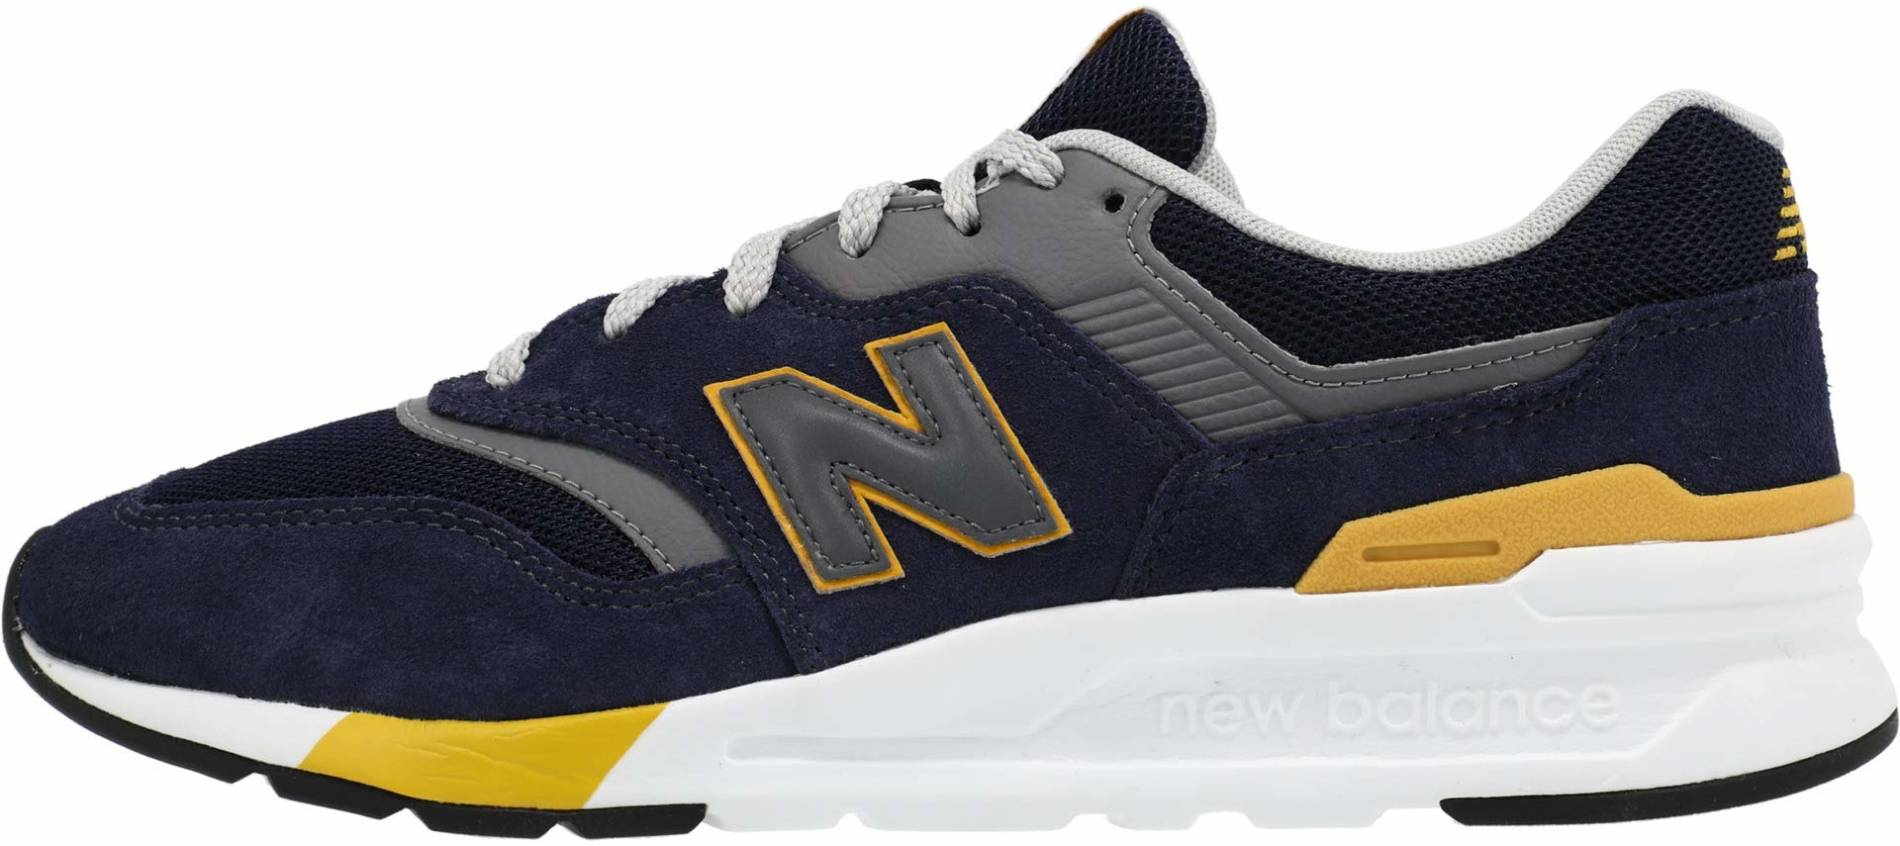 New Balance 997H sneakers in 20 colors (only $28) | RunRepeat